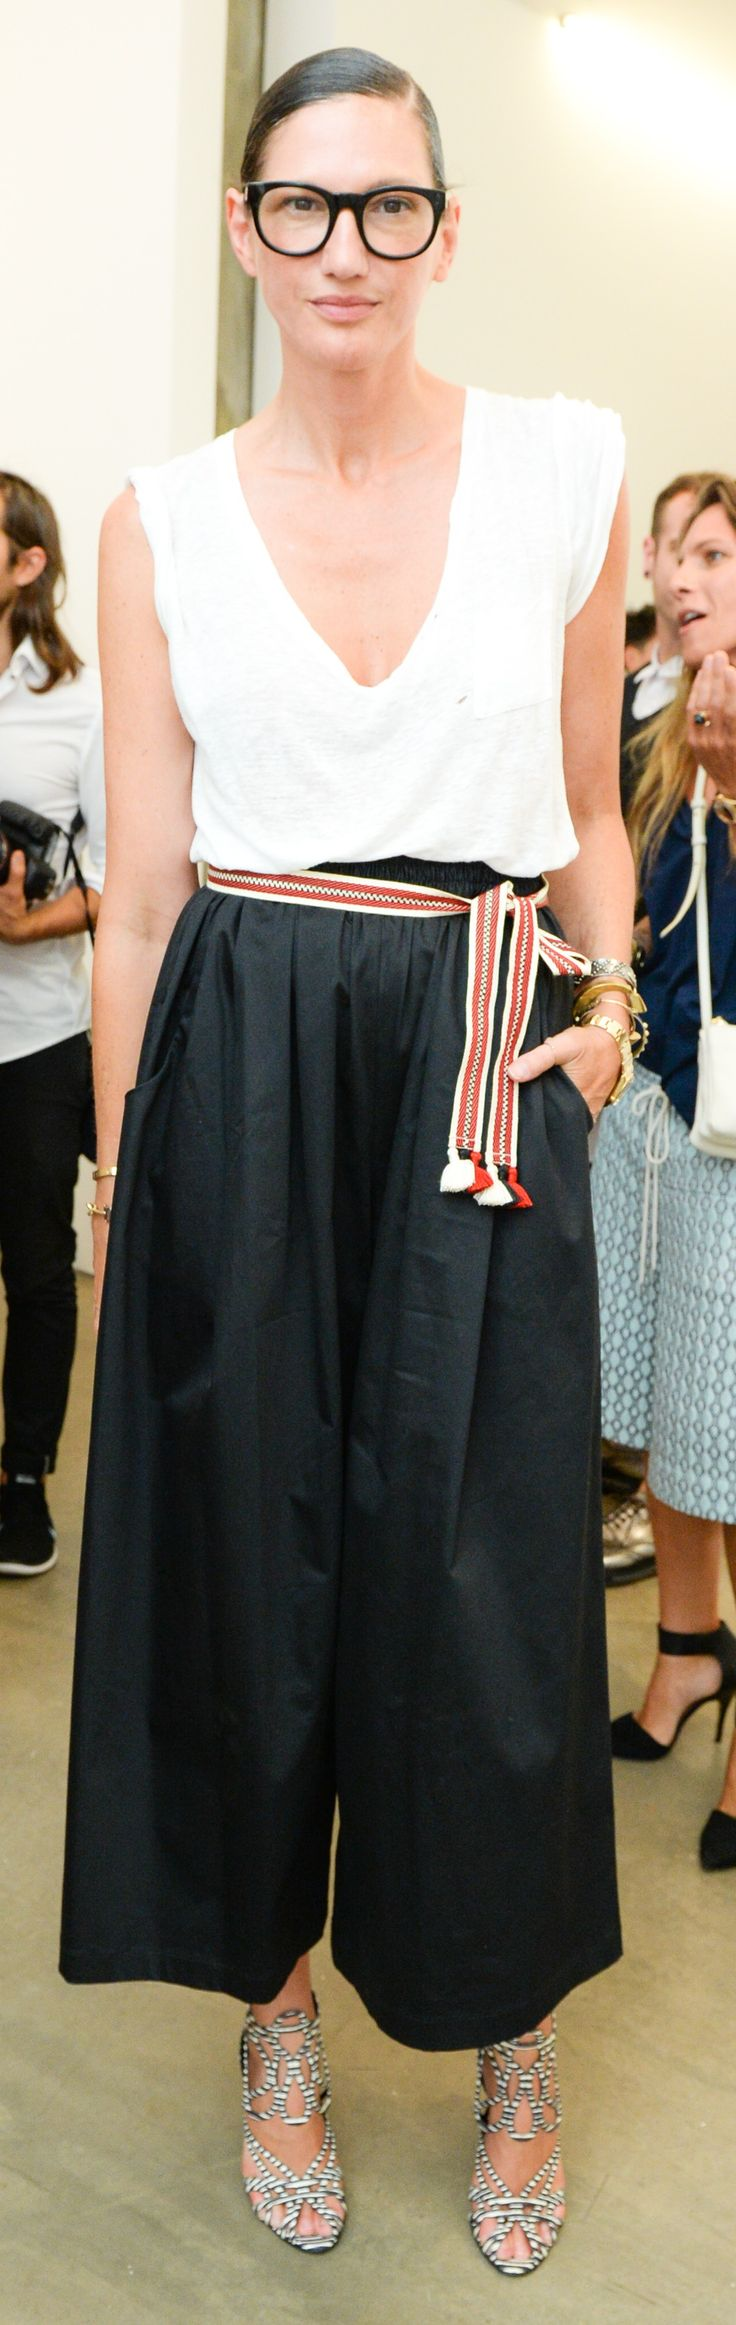 Wear pants to the party like Jenna Lyons